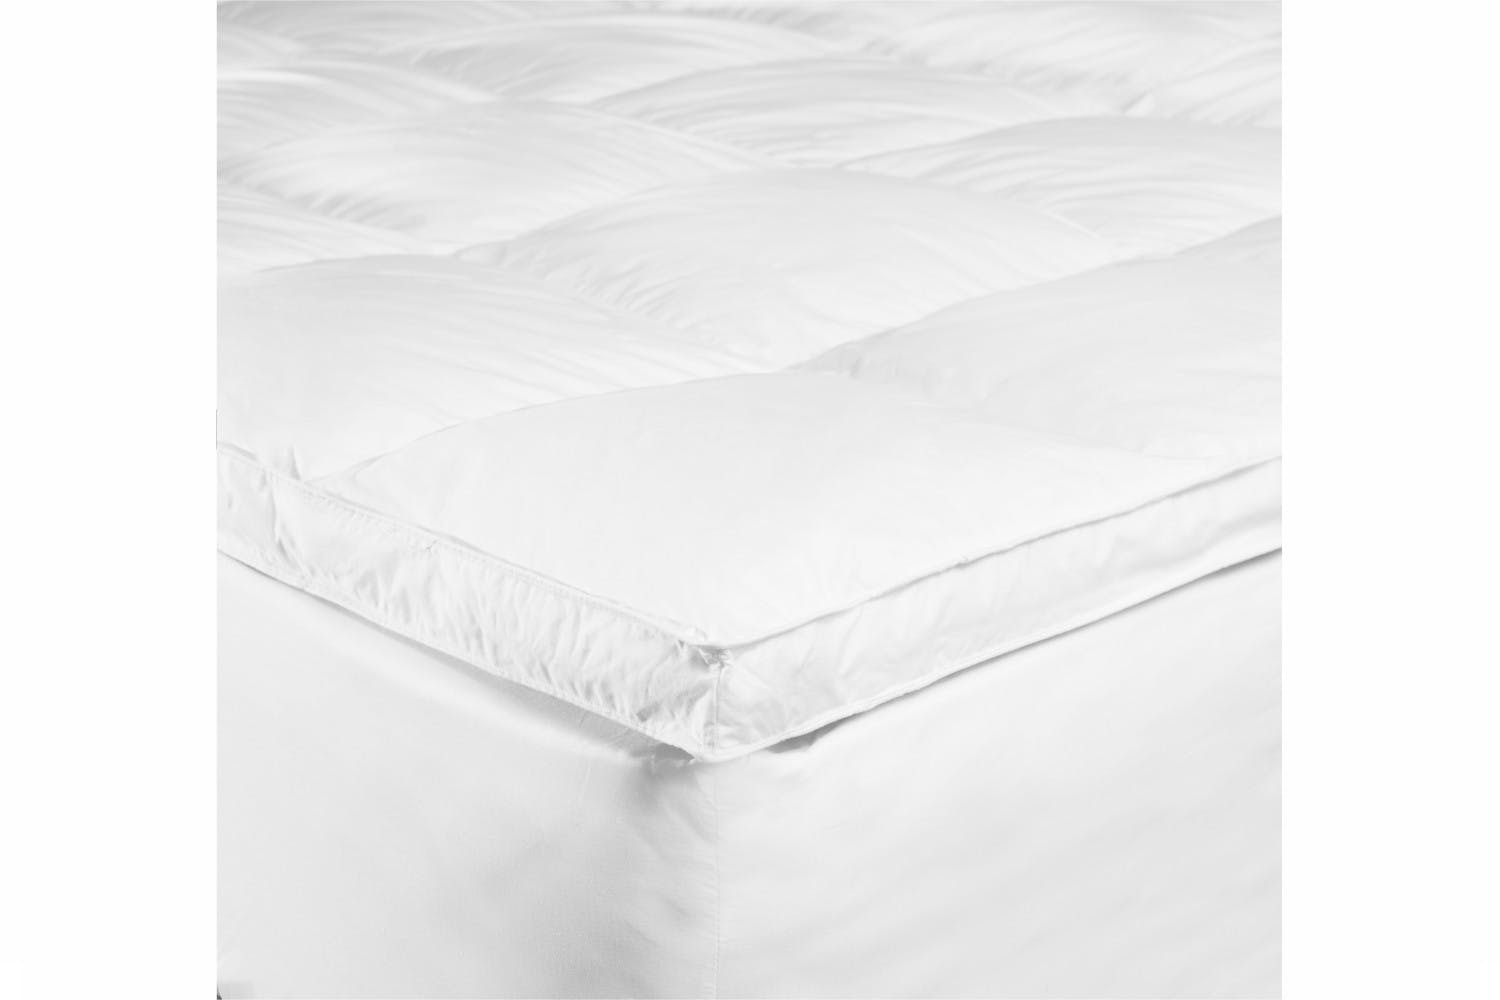 The Linen Room White Goose Feather & Down Topper | Double